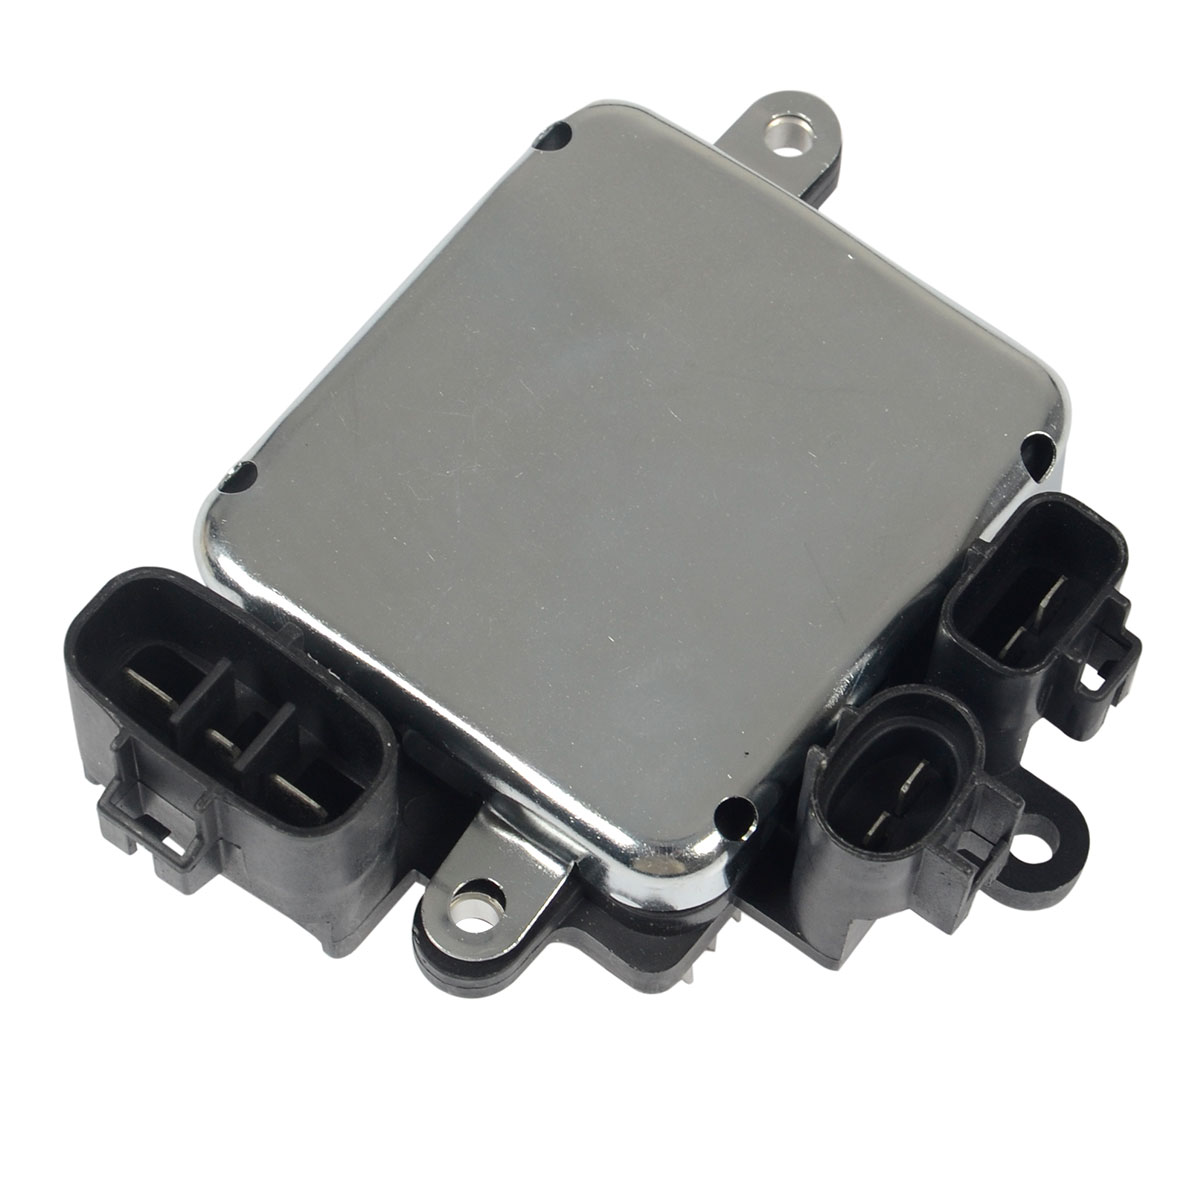 Blower Motor Resistor For Toyota Camry Venza Highlander Avalon Gs300 Gs350 Gs430 Blower Motors